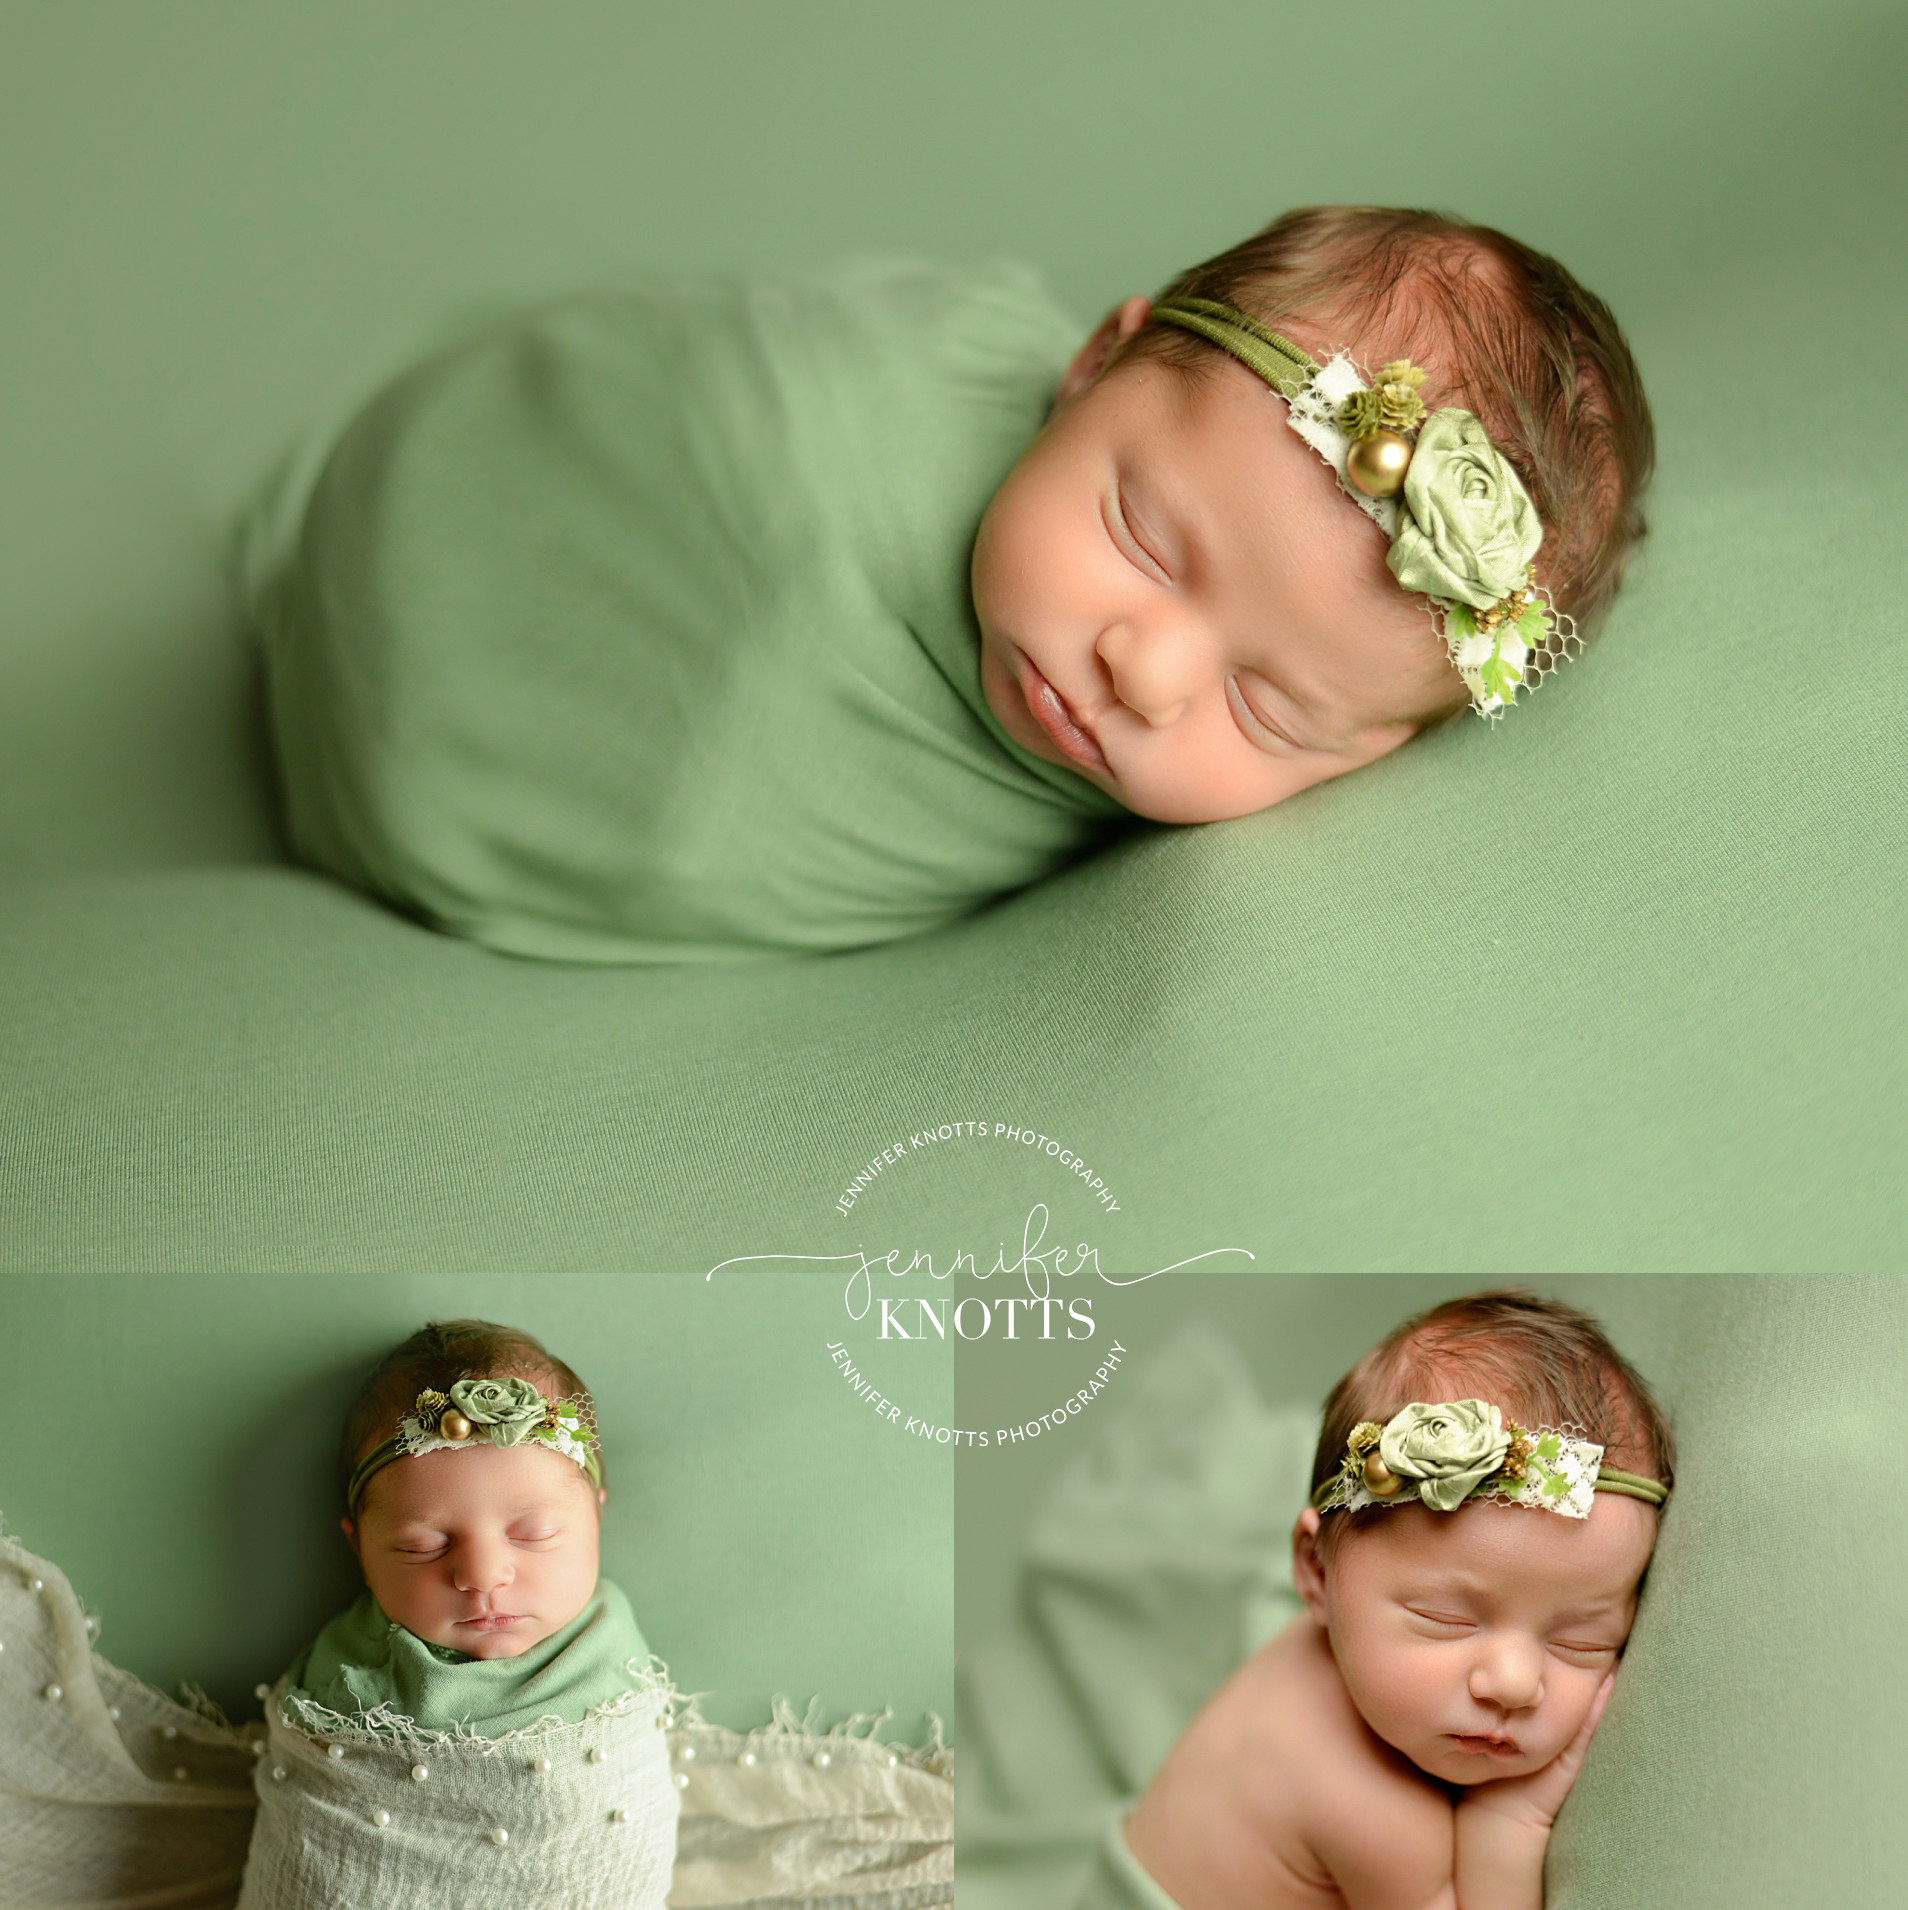 newborn girl posed on green fabric with pearl and floral accents